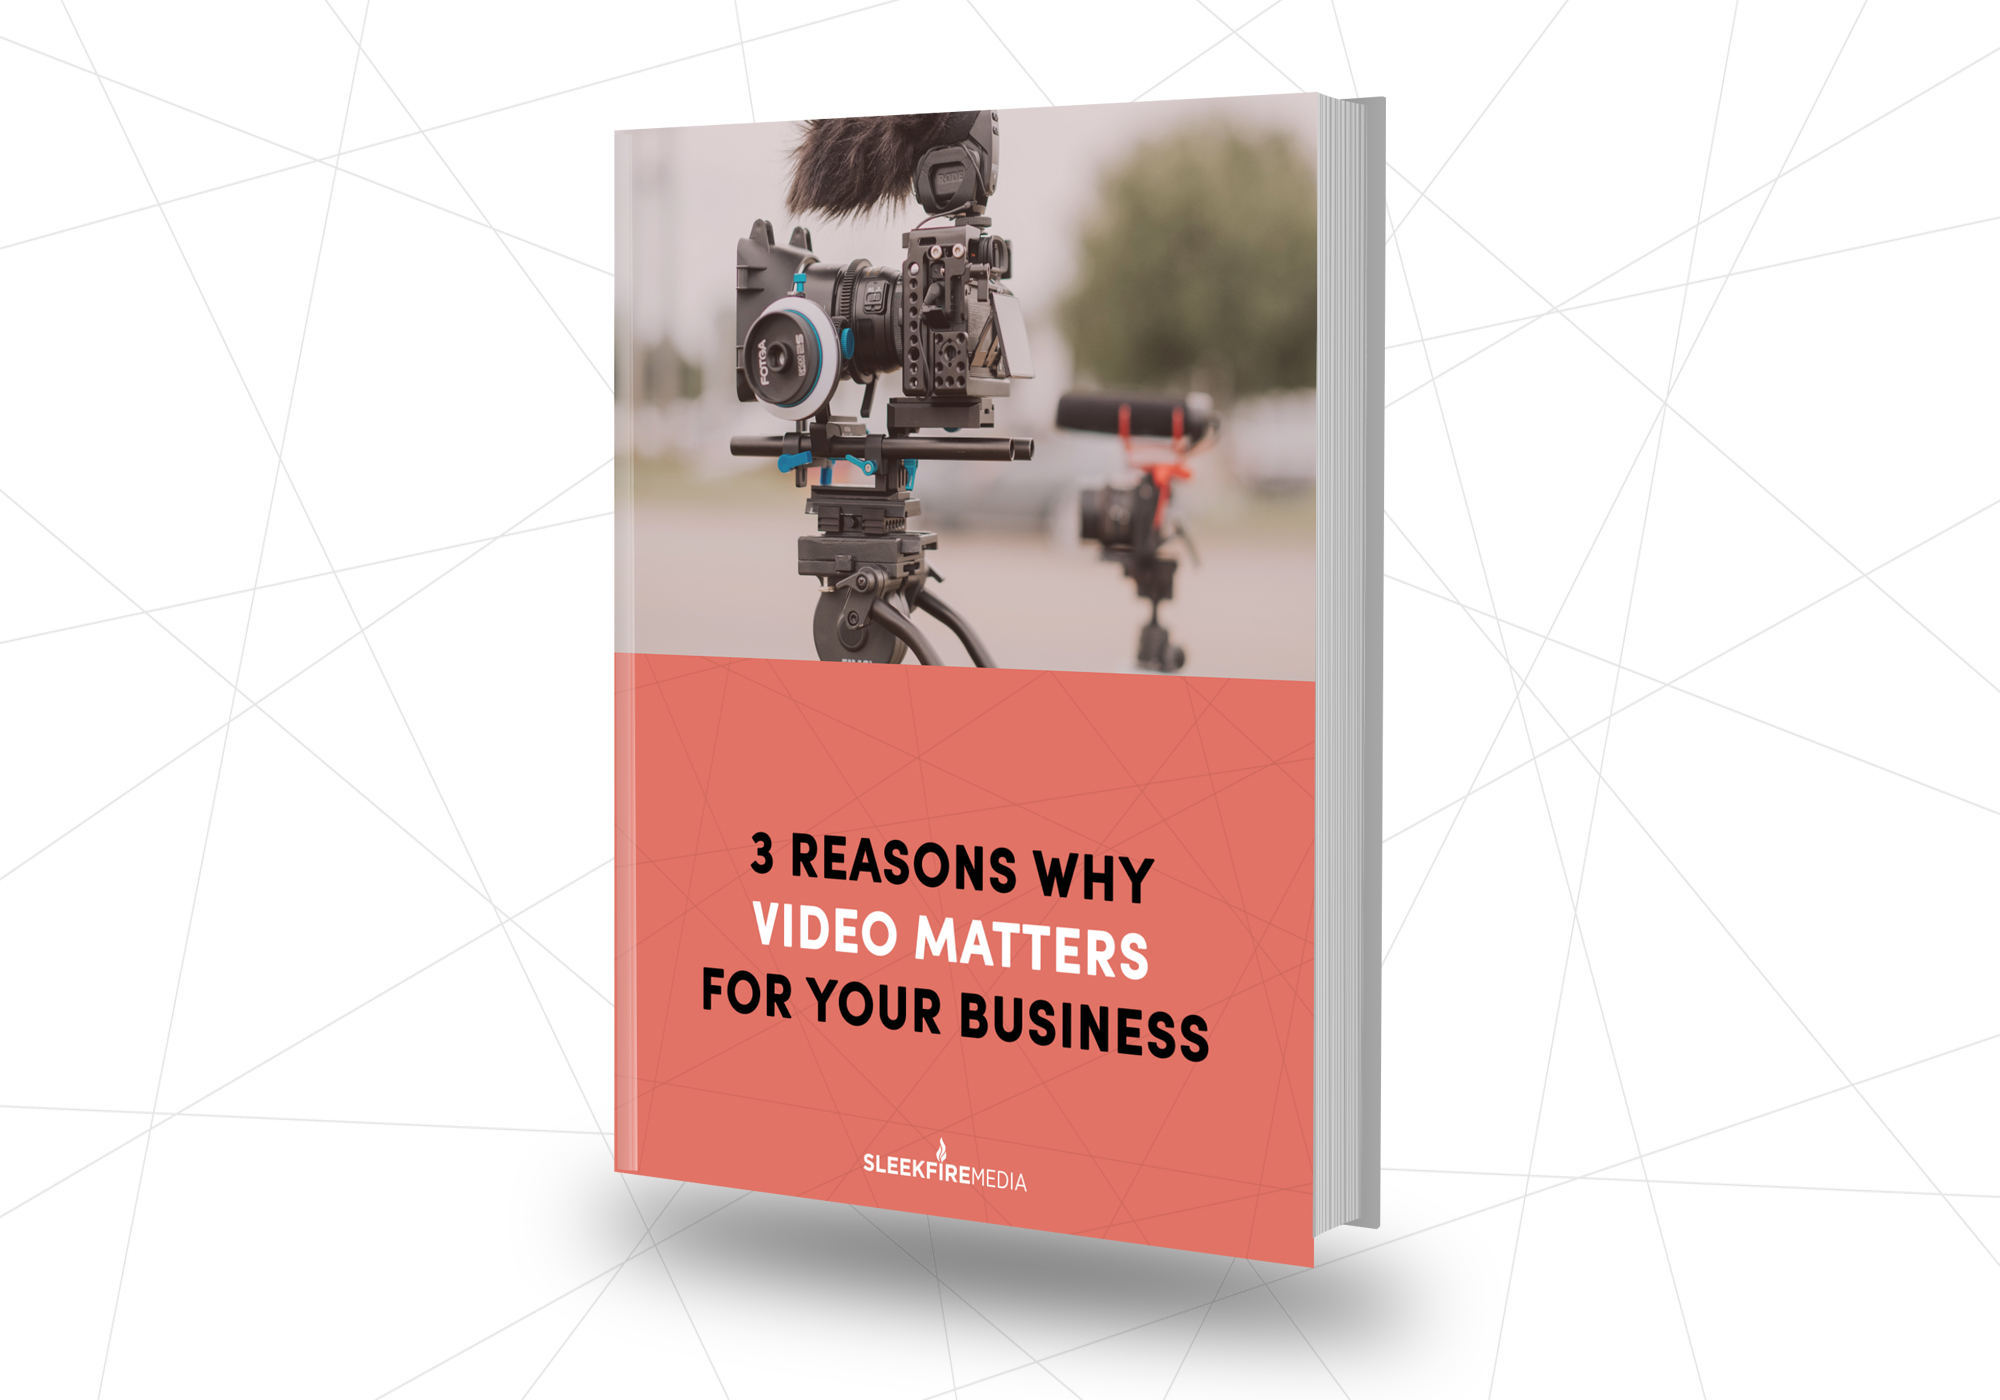 3 Reasons Why Video Matters For Your Business Sleekfire Media.jpg